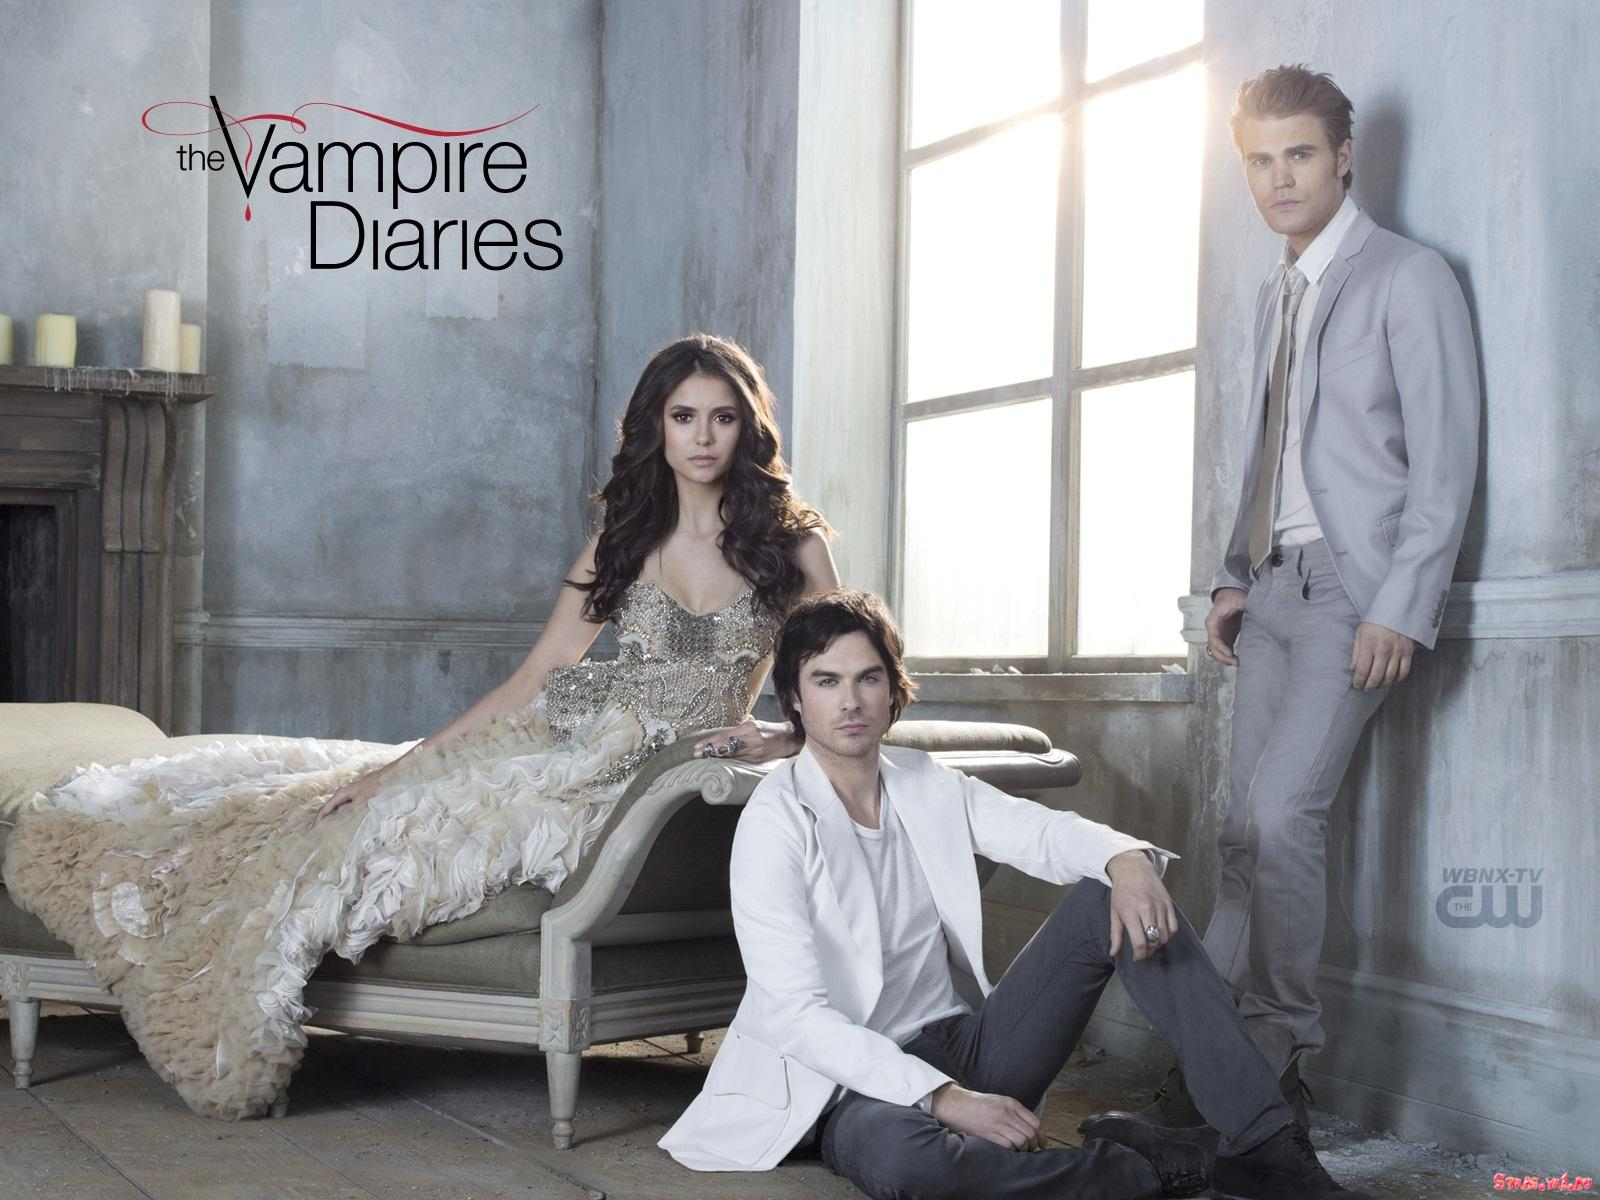 The Vampire Diaries Wallpapers HD. CLICK ON WALLPAPERS